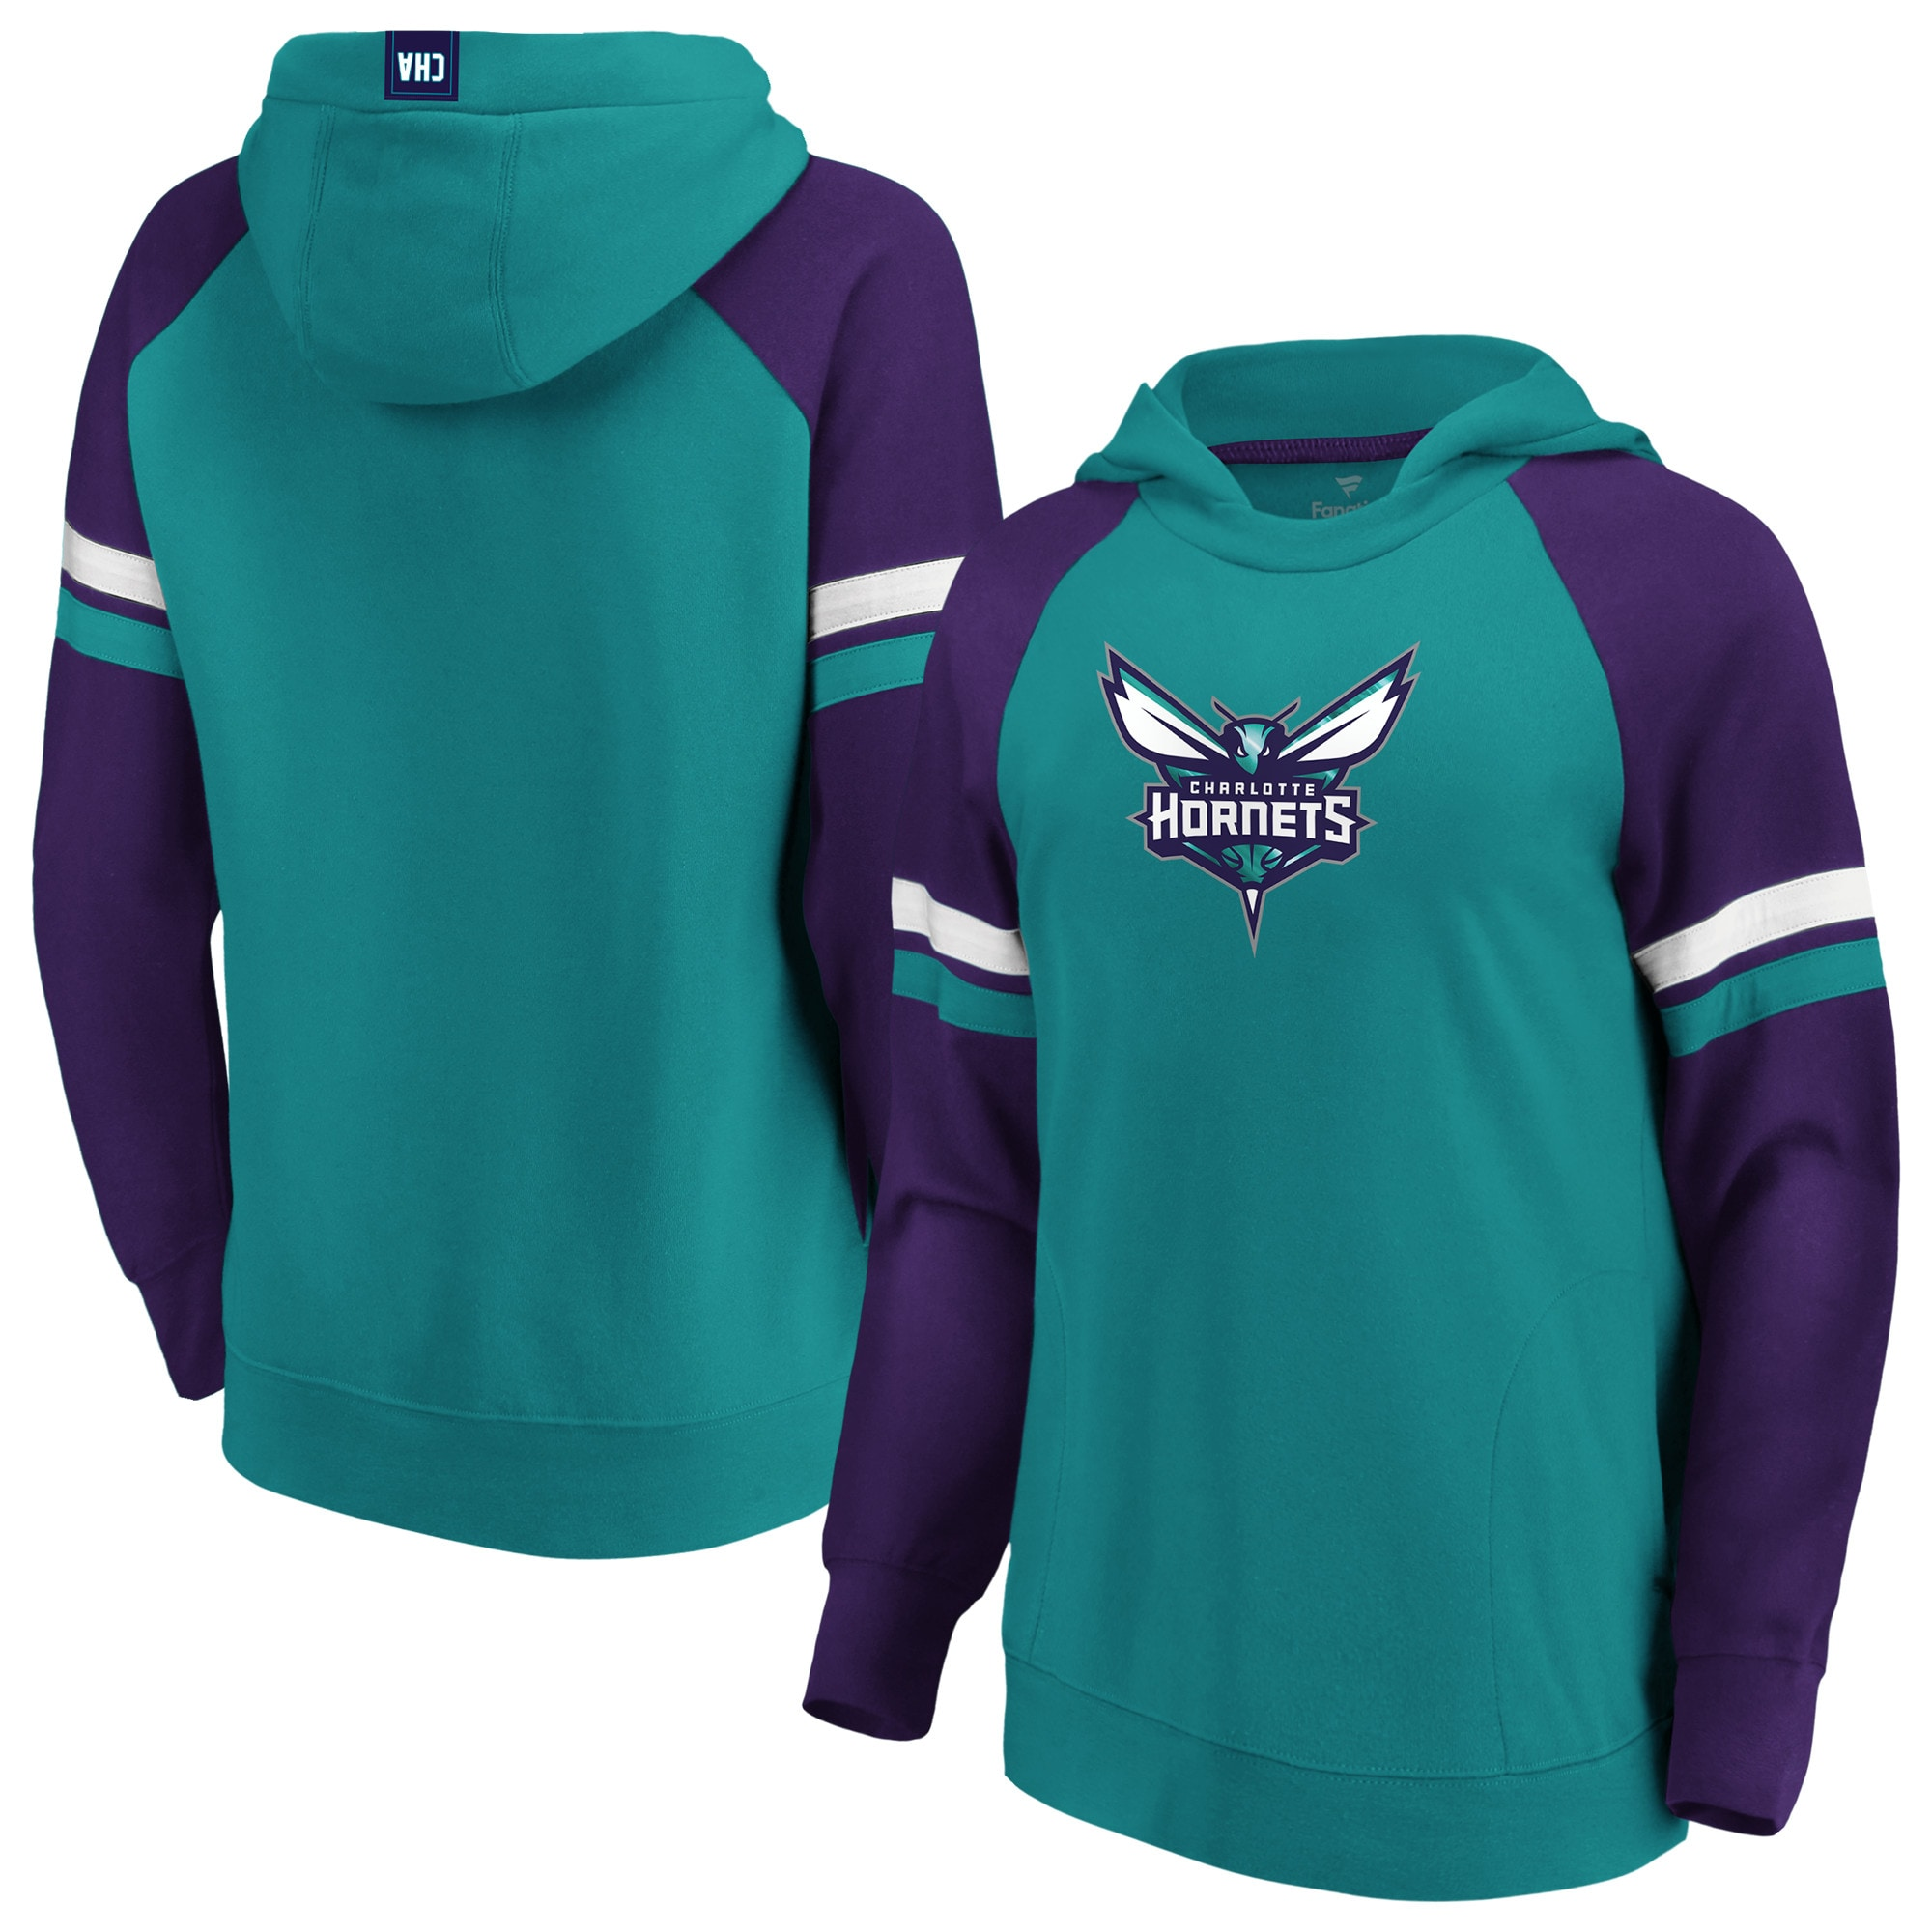 Charlotte Hornets Fanatics Branded Women's Iconic Best in Stock Pullover Hoodie - Teal/Purple